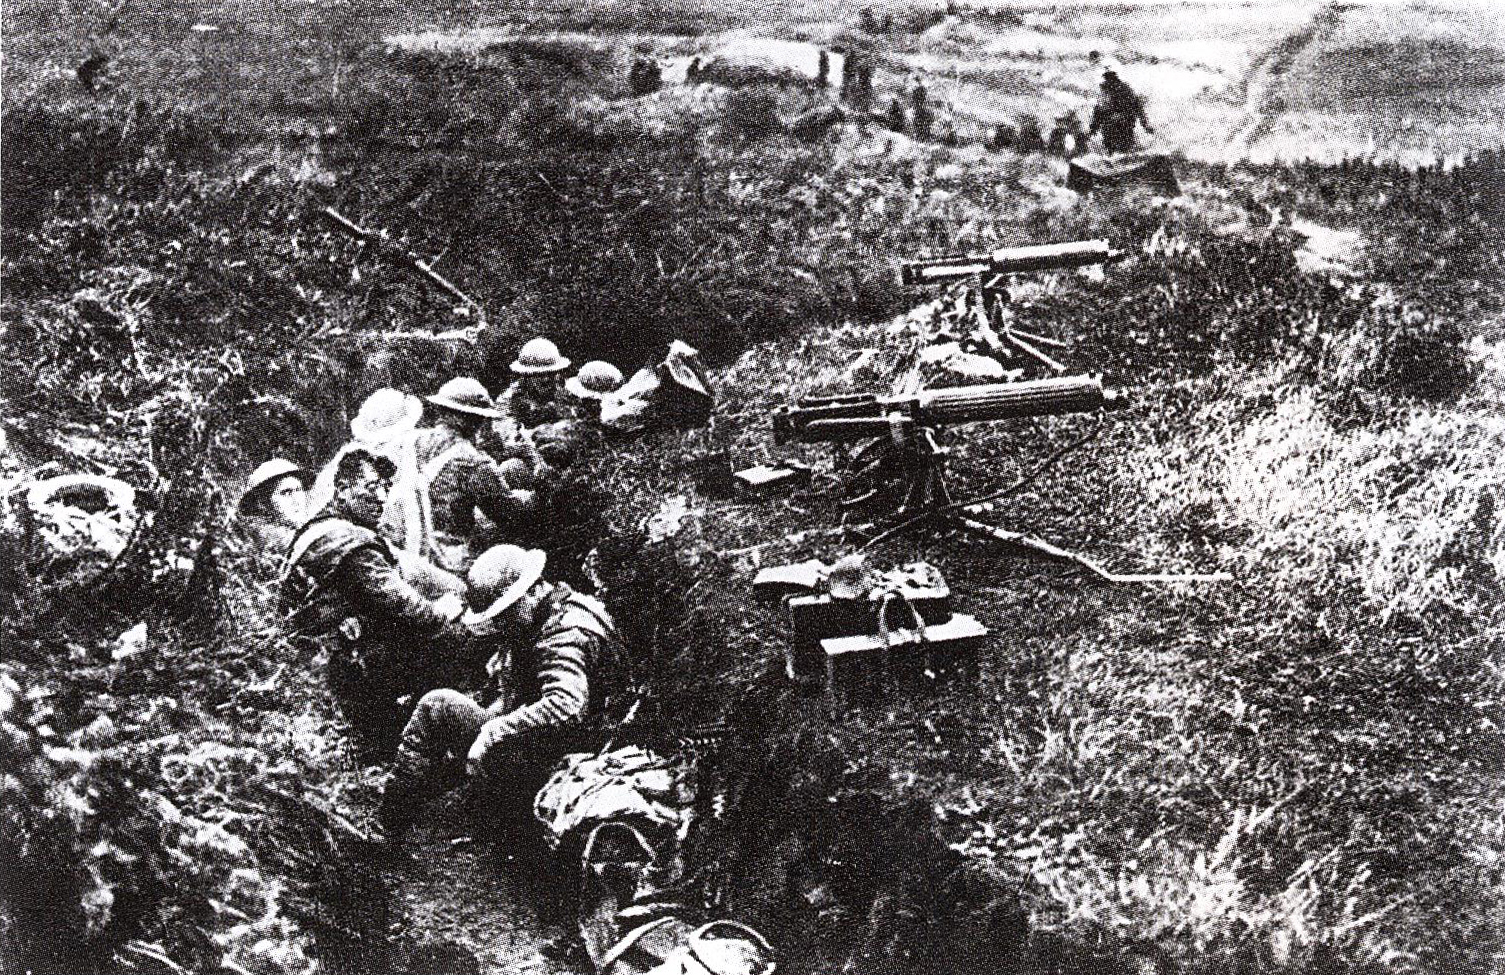 "a history of the battle of verdun the longest battle in the first world war 5 the battle of verdun (february-december 1916) was the longest battle of the war, lasting over 300 days 6 verdun put such strain on french forces that the british were pushed to launch the somme offensive a french infantryman described the german artillery bombardment – ""men were squashed cut in two or divided top to bottom."